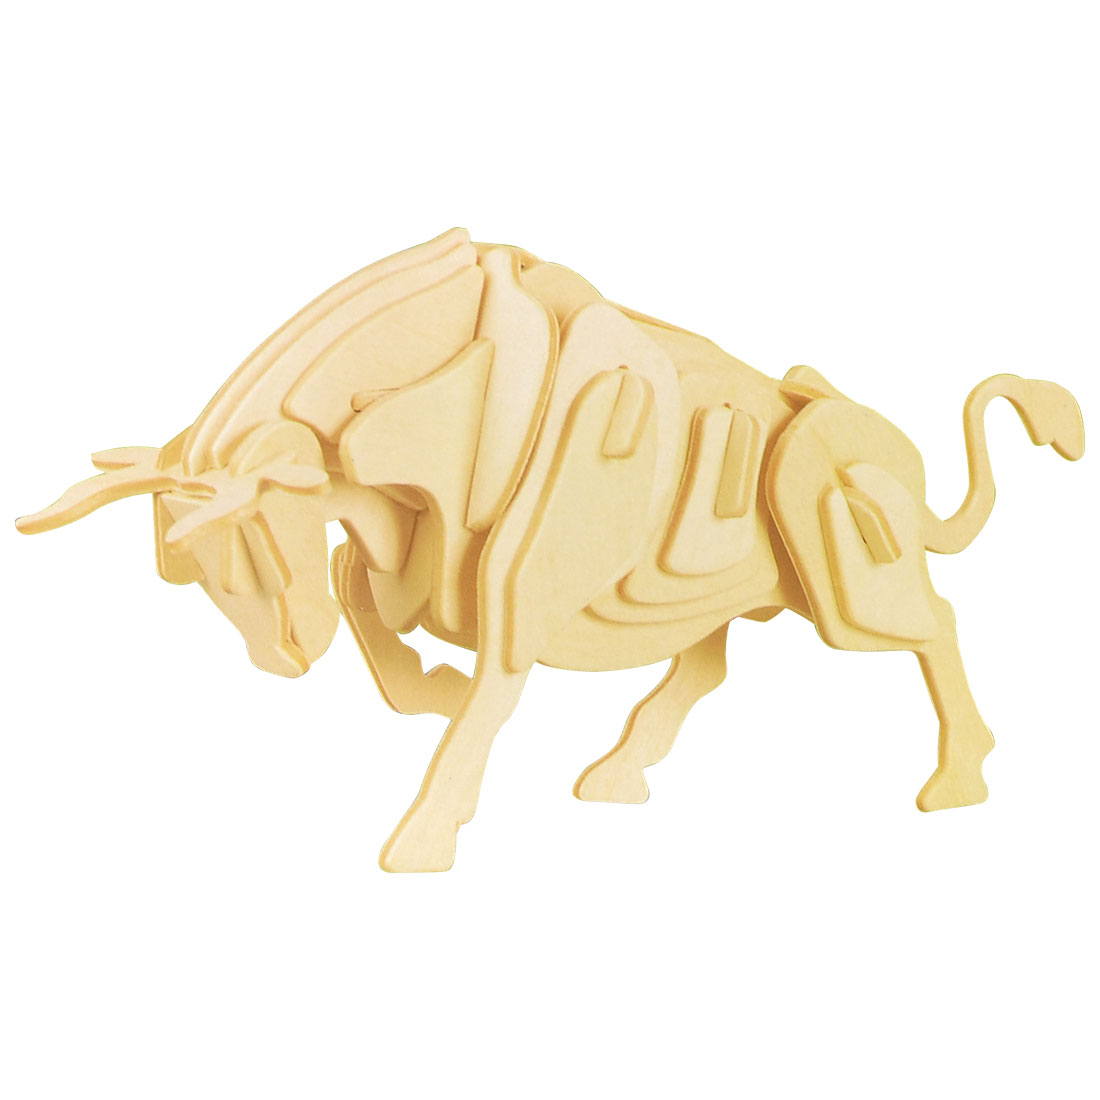 Bull Design Wooden Model Educational Puzzle Toy Woodcraft Construction Kit